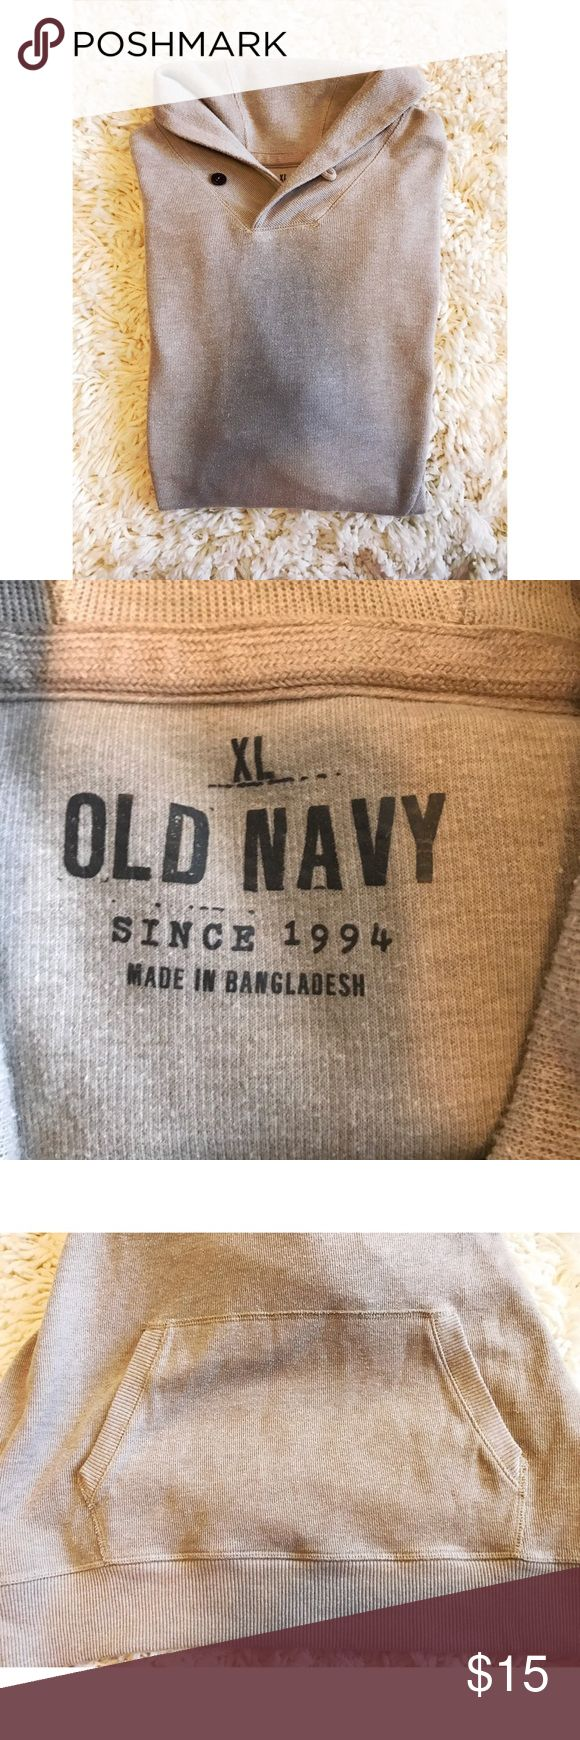 Old Navy Sweater Handsome shawl collar. Front pocket. Old Navy Sweaters